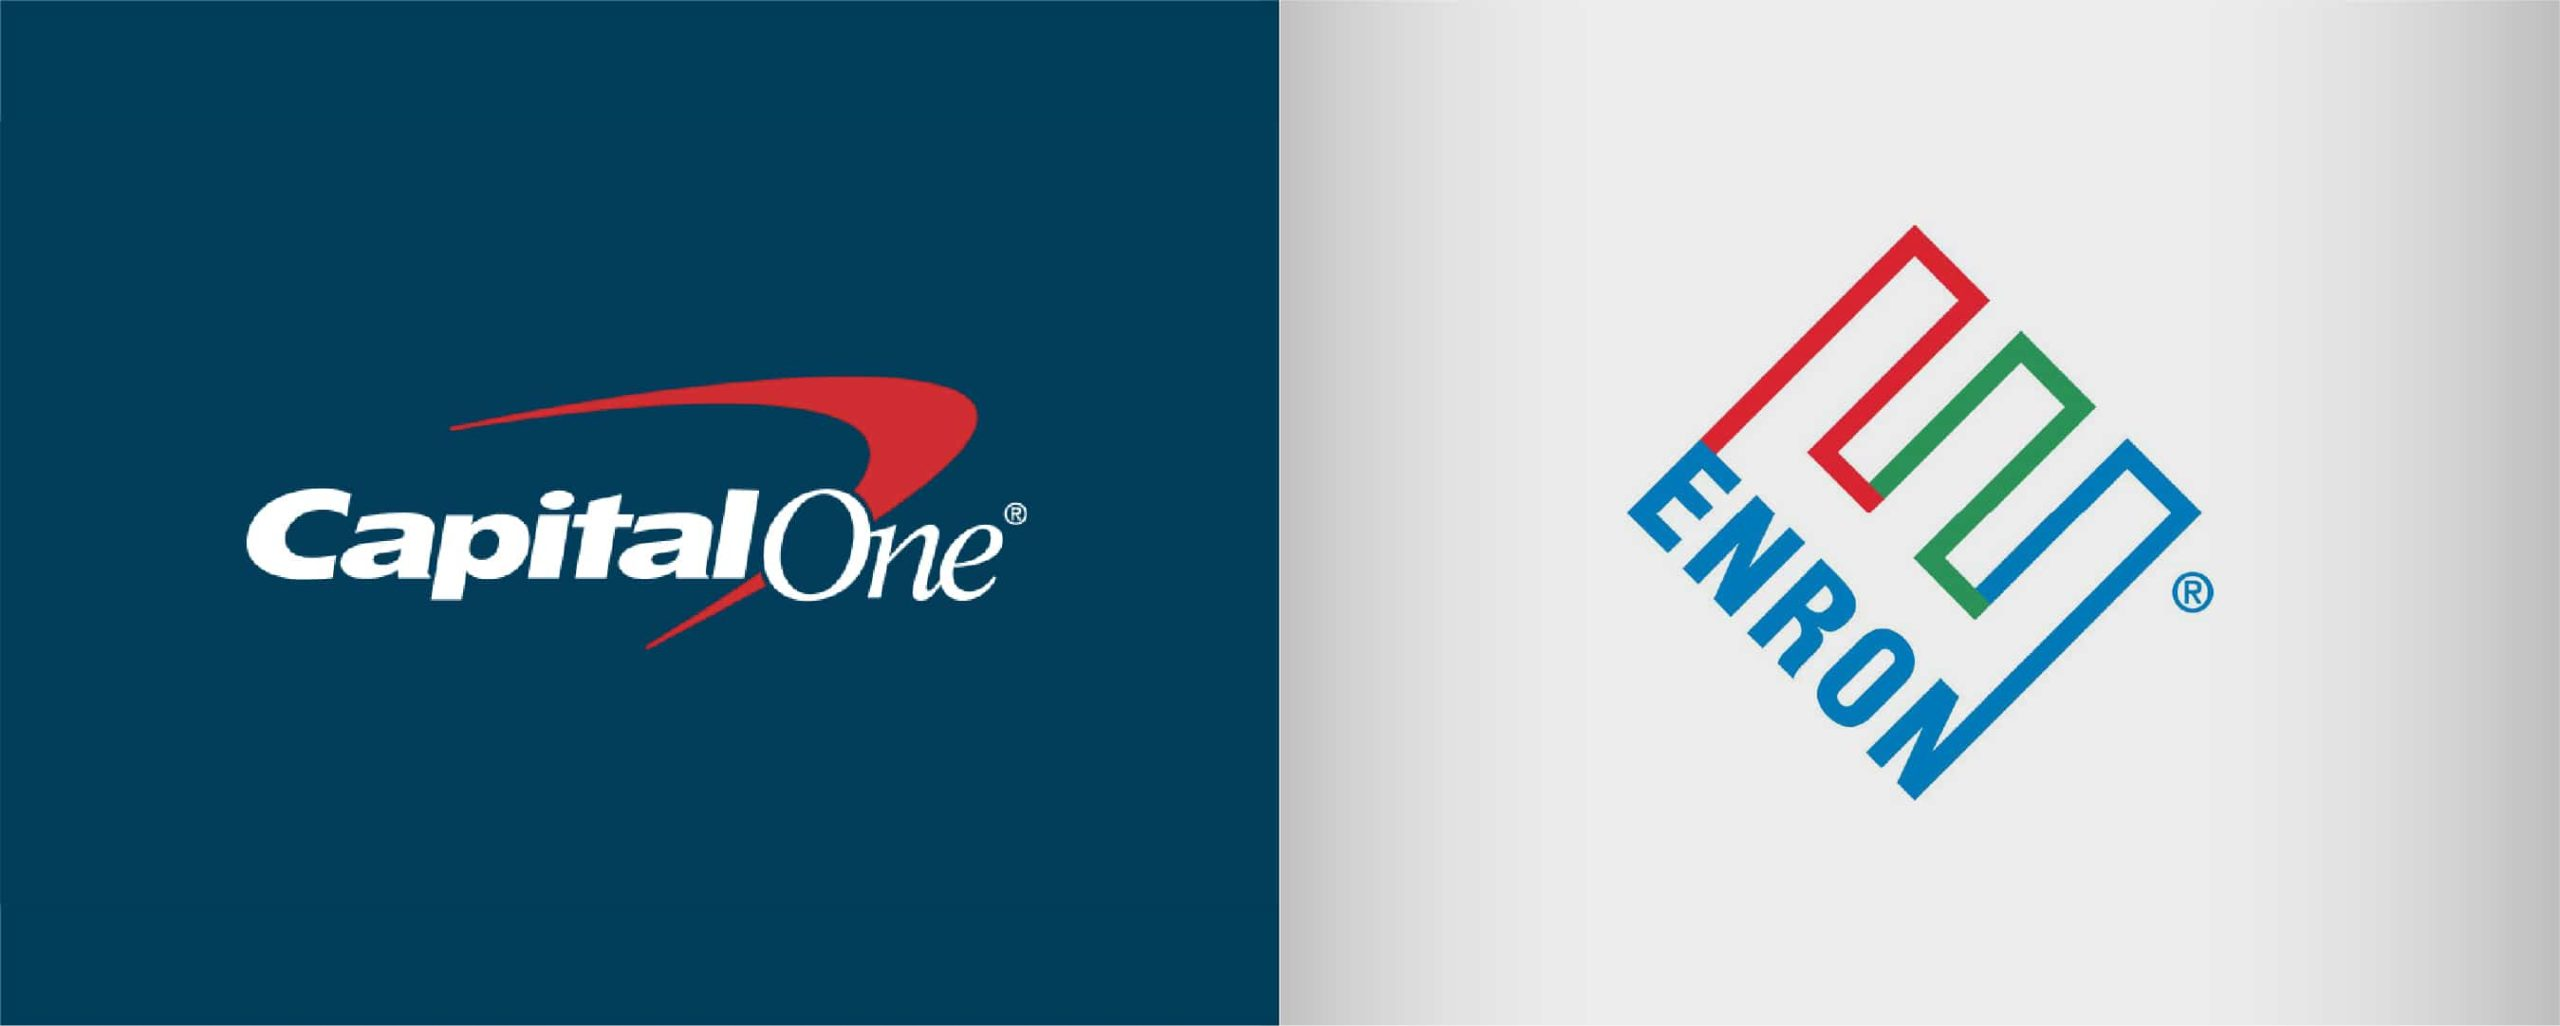 Capital One and Enron